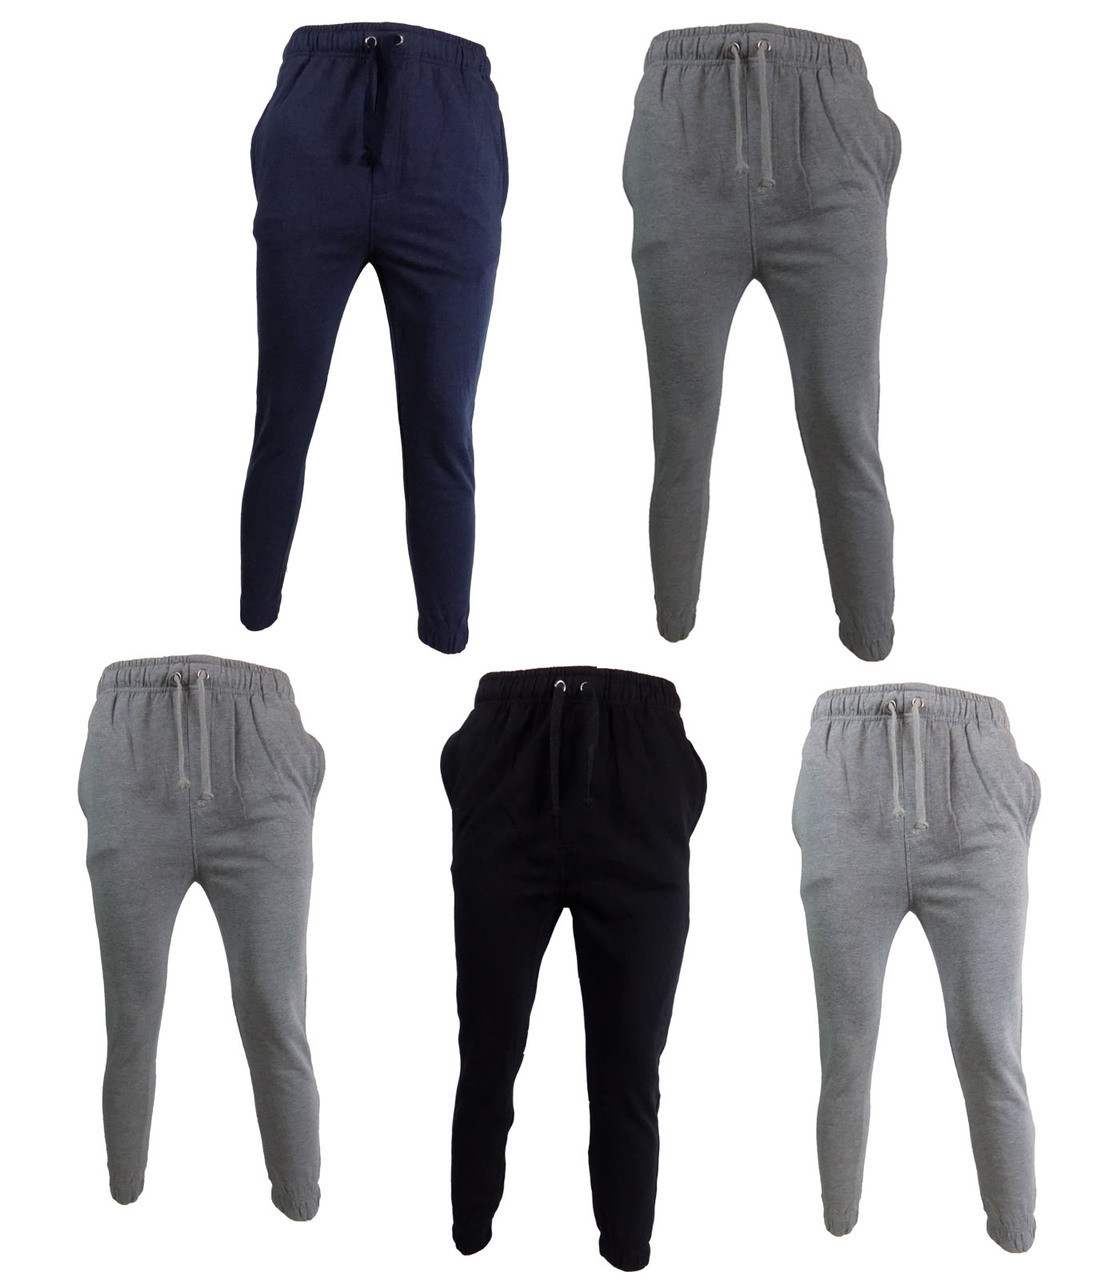 56b68778 Ex N-w L-ok Mens Assorted Jogger | Ex Chainstore Clothing Suppliers |  Clothing Wholesalers | Ex High Street | Wholesale Clothing | UK | Europe